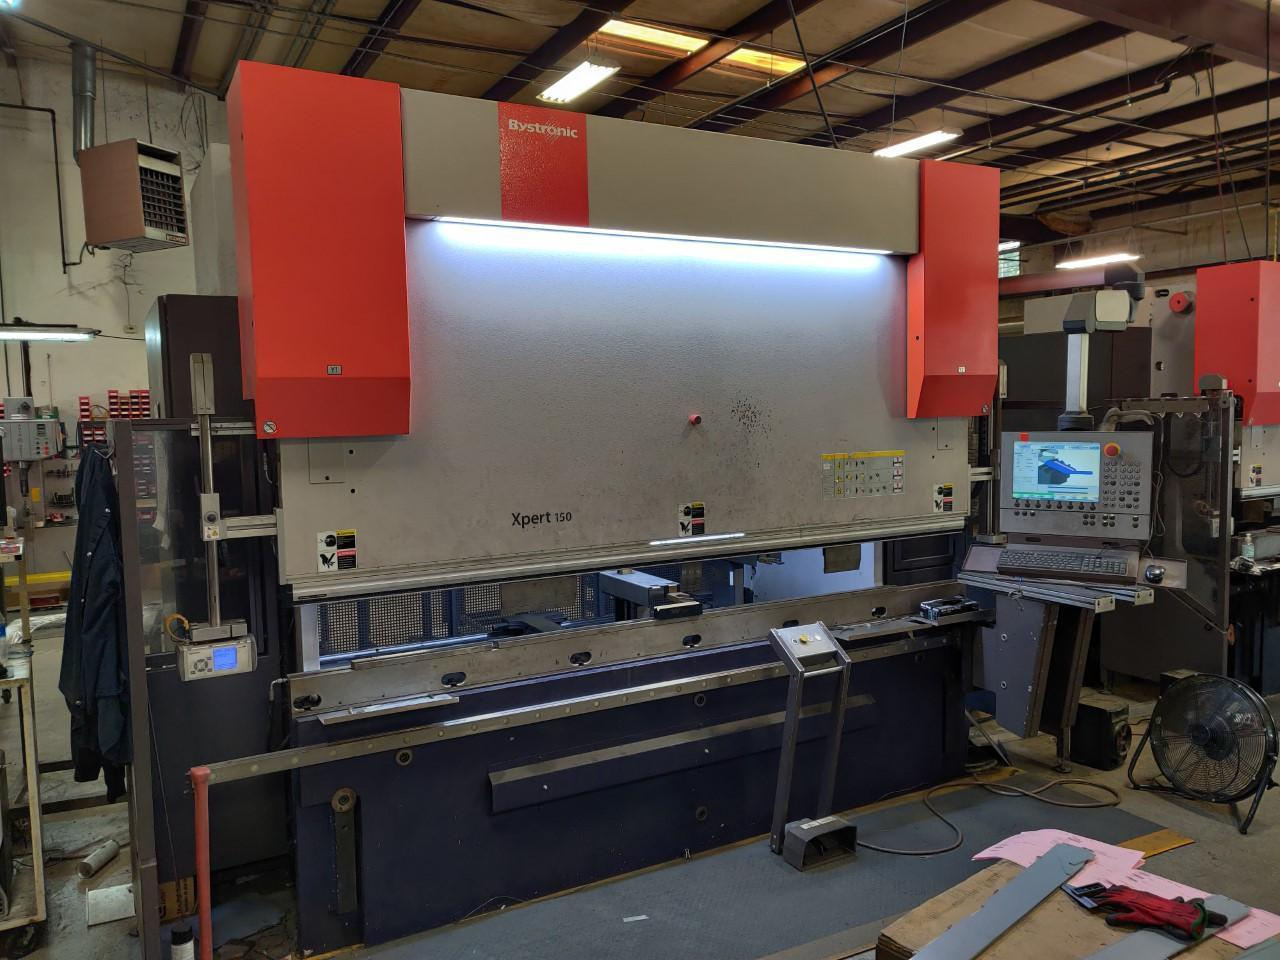 2012 Bystronic Xpert 150, 10' x 150 Ton, 6 Axis CNC Back Gauges